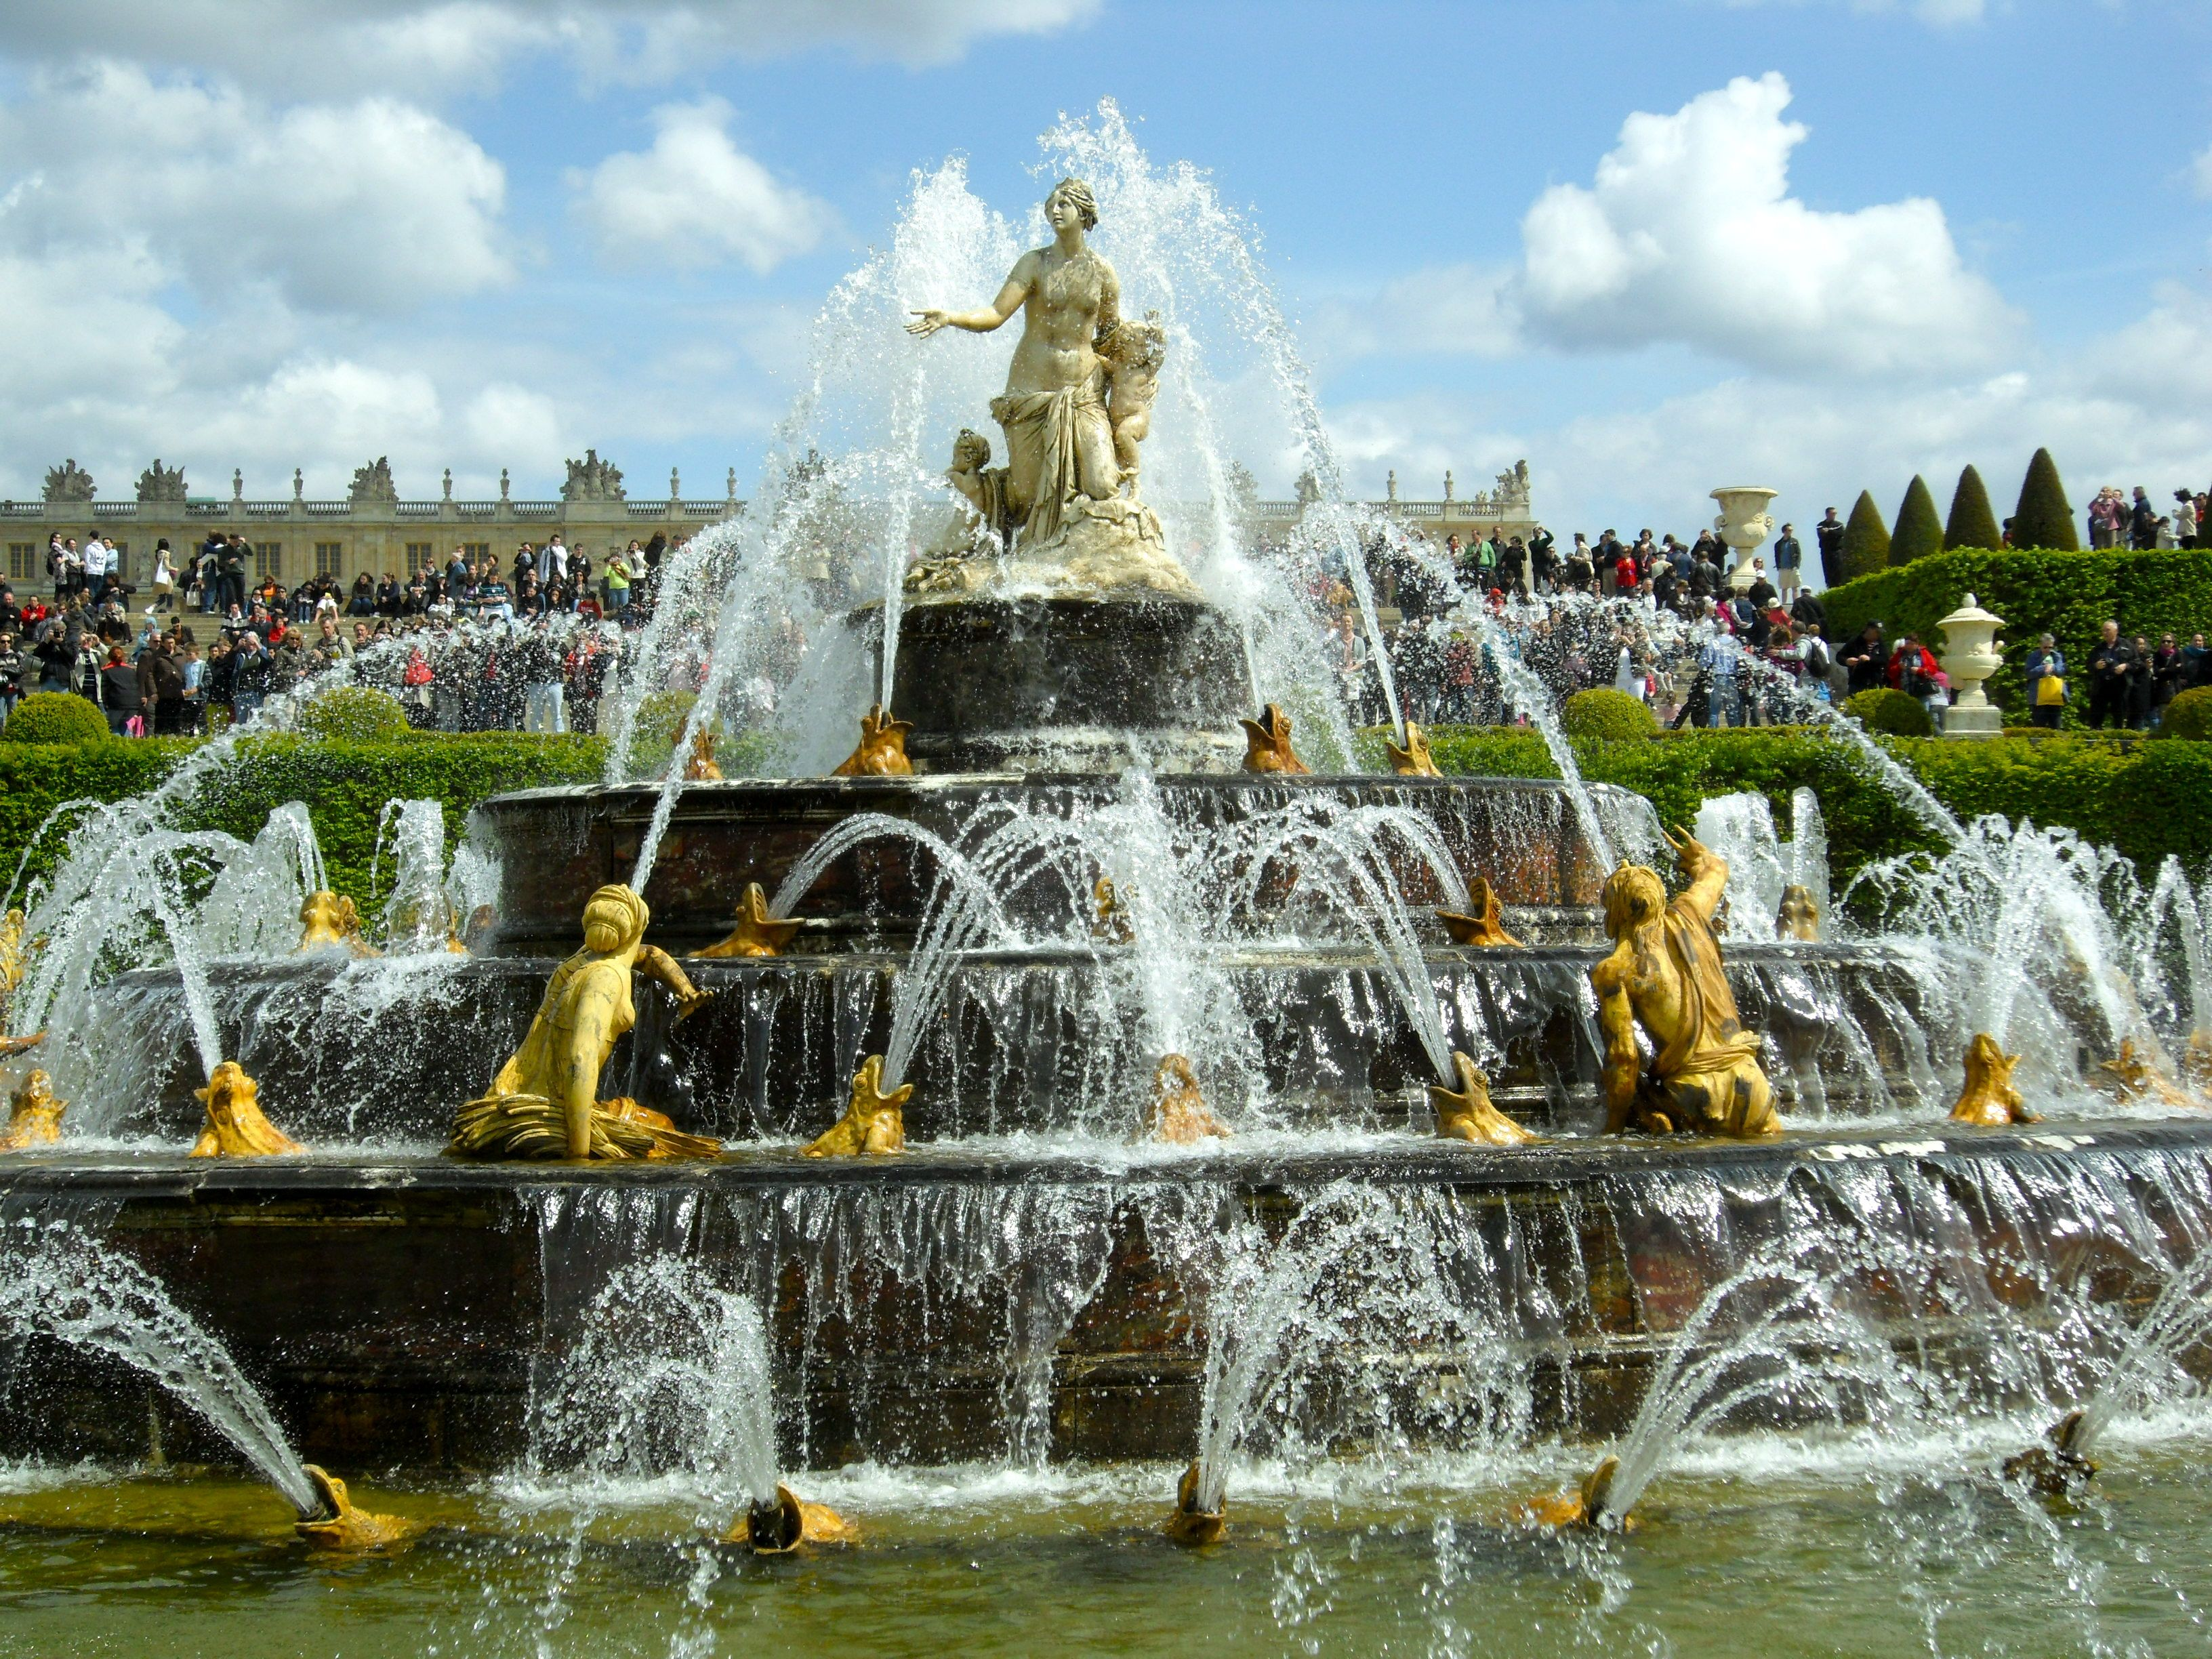 8f76b6c85f4af159948ef2909aac7070 - Musical Fountain Shows Or Musical Gardens Versailles